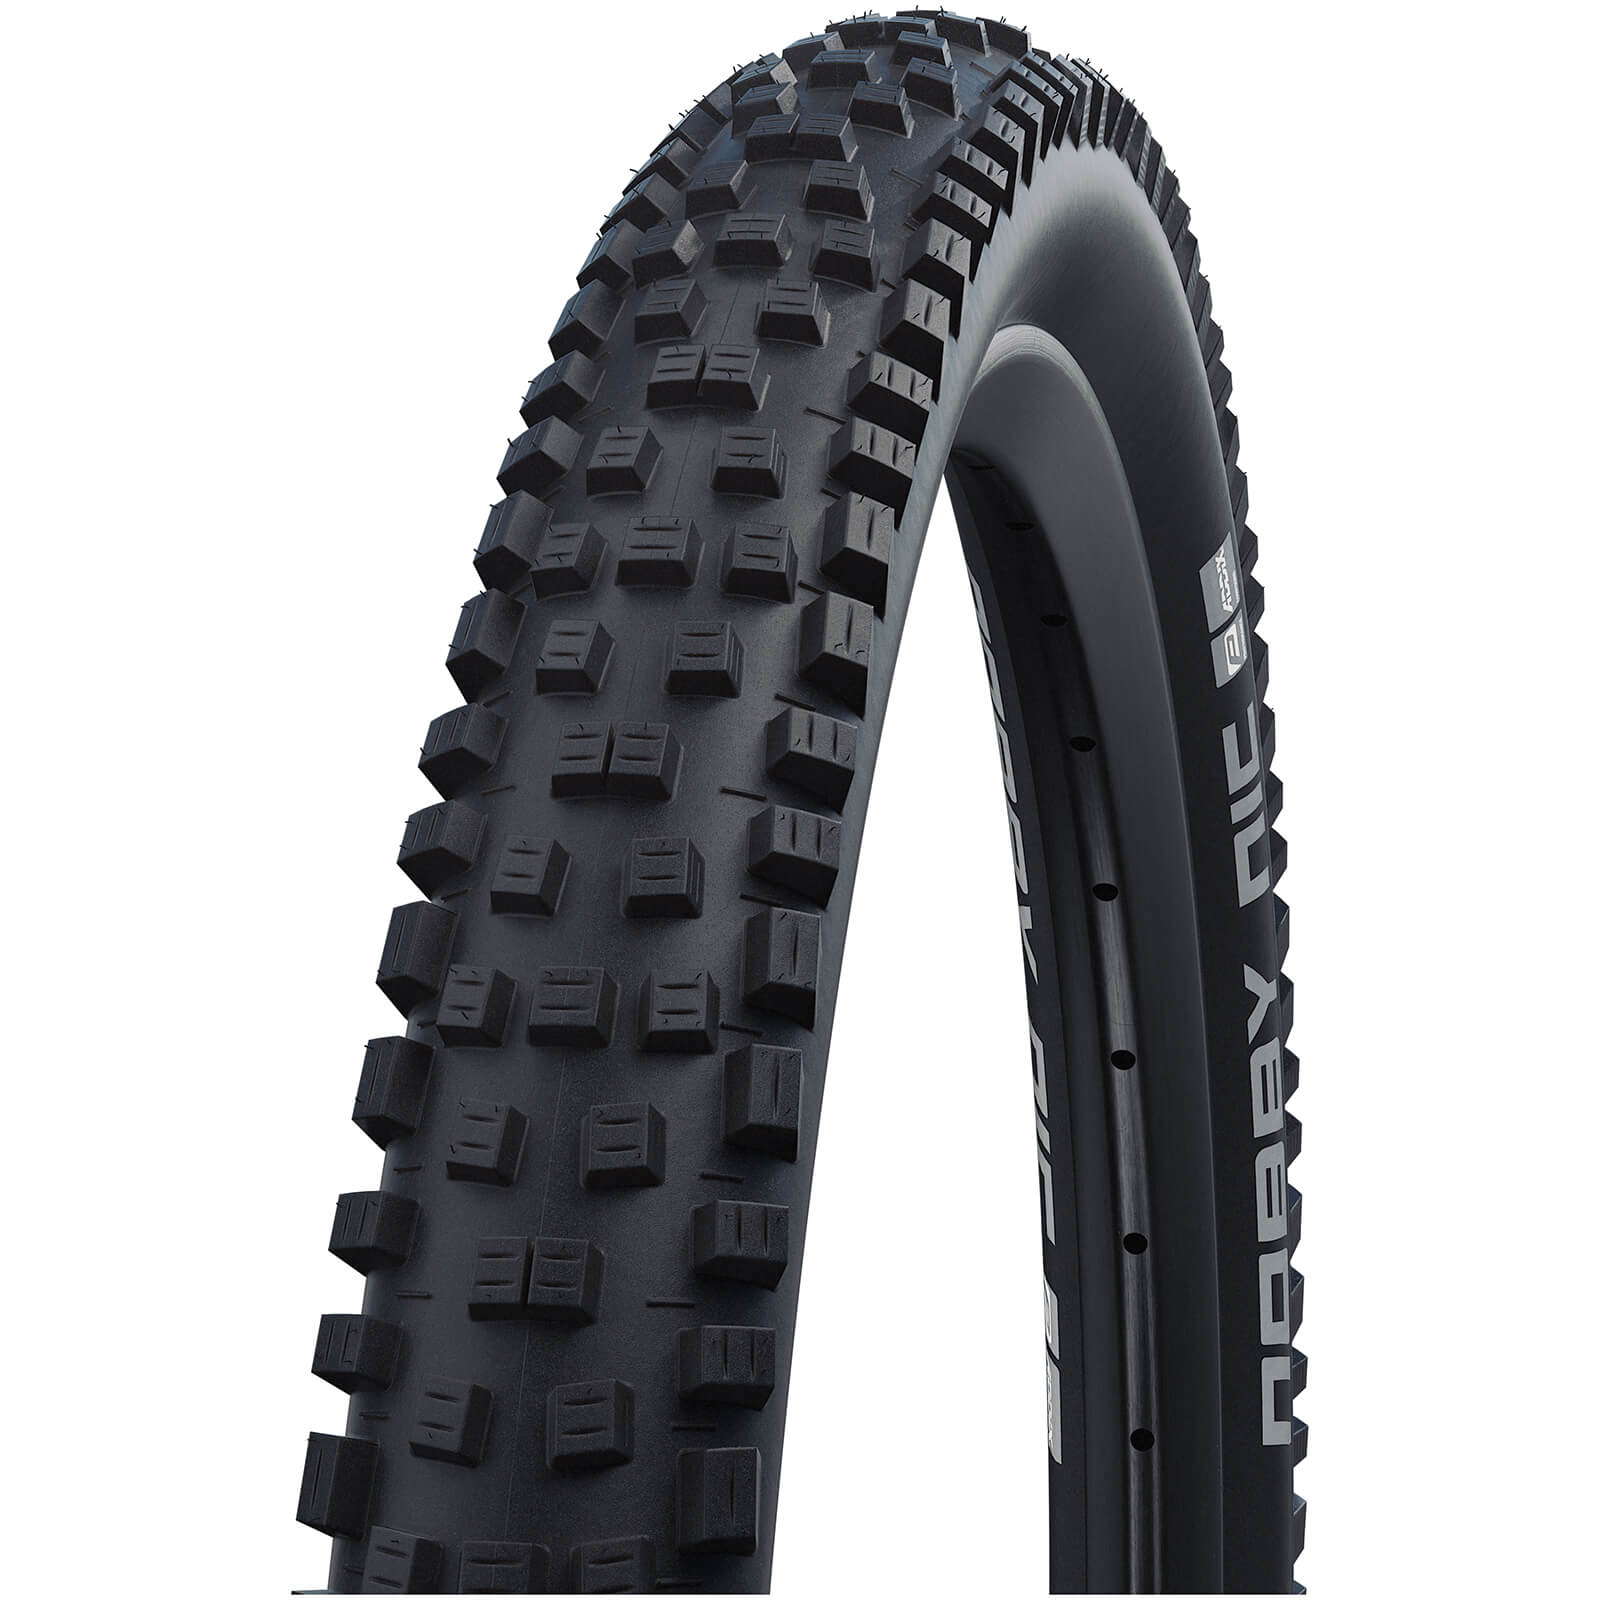 Schwalbe Nobby Nic Performance Folding Performance Clincher MTB Tyre - Black - 27.5in x 2.35in - Black